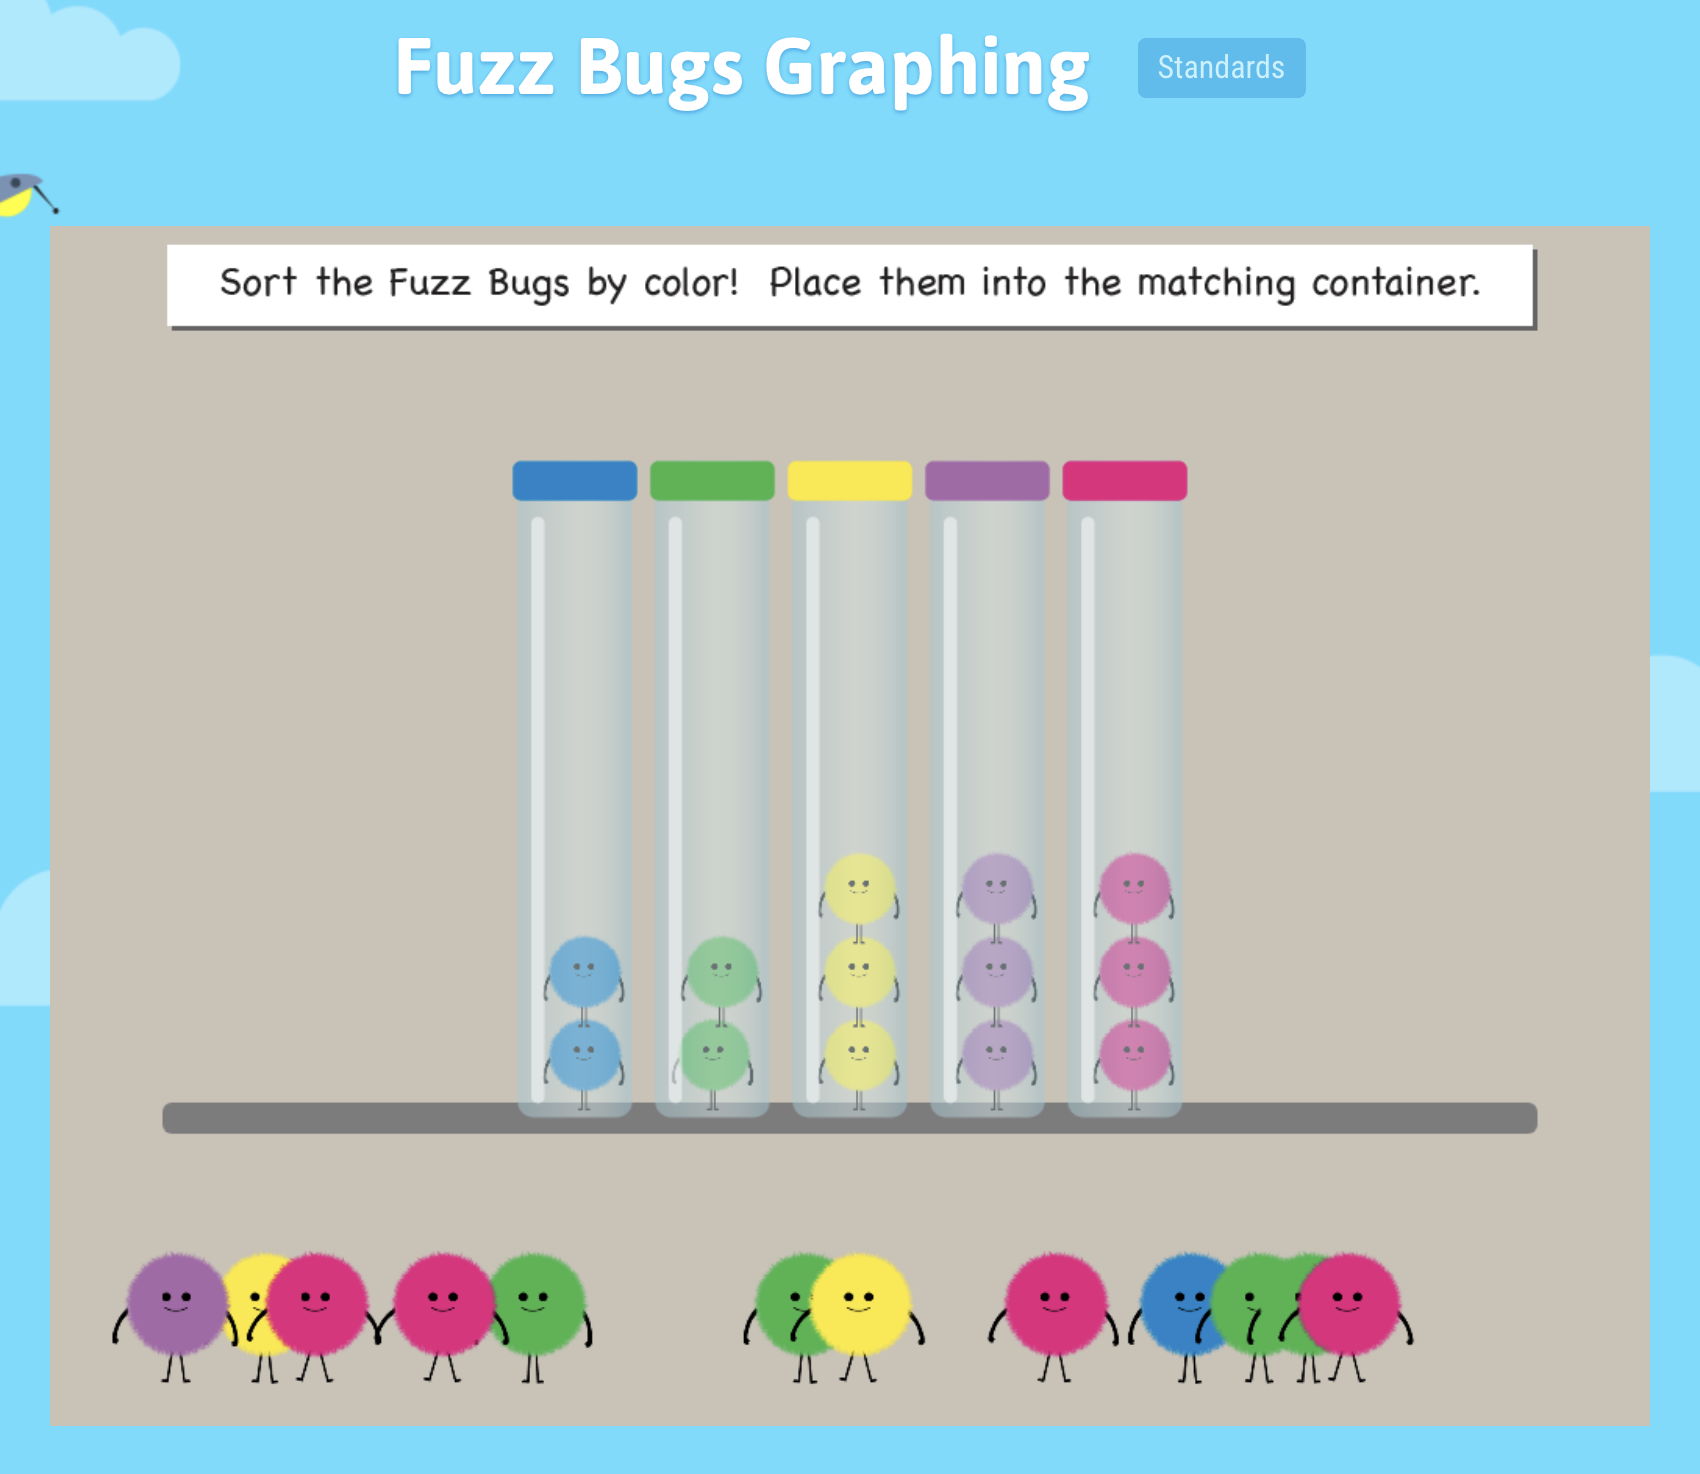 Players Will Create A Bar Graph By Sorting The Fuzz Bugs Into The Matching Color Container